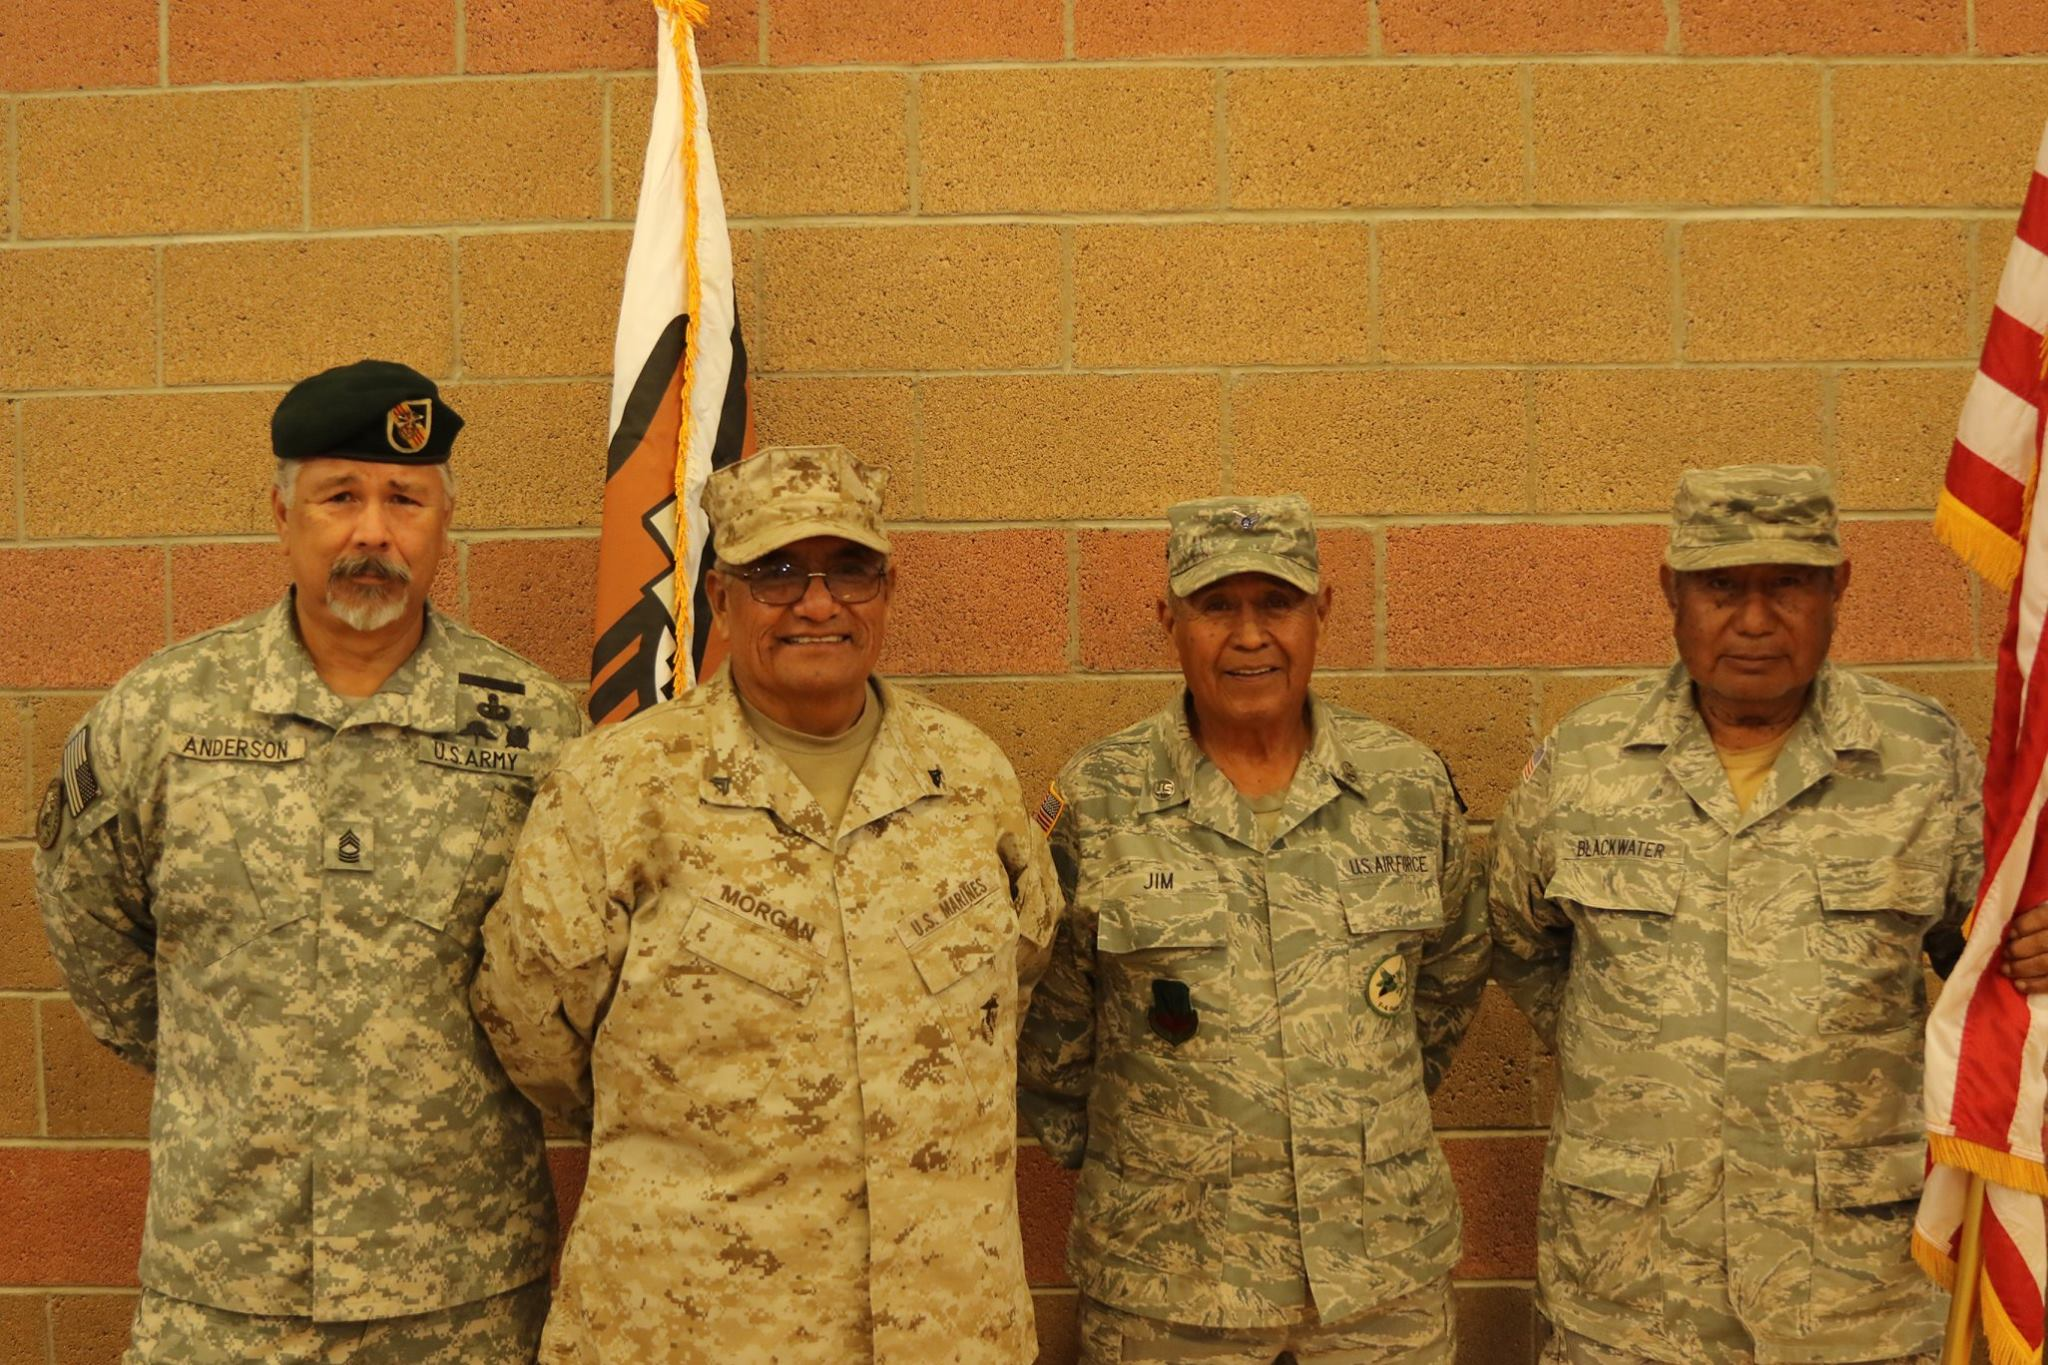 Gila River Indian Community sues over health care for veterans